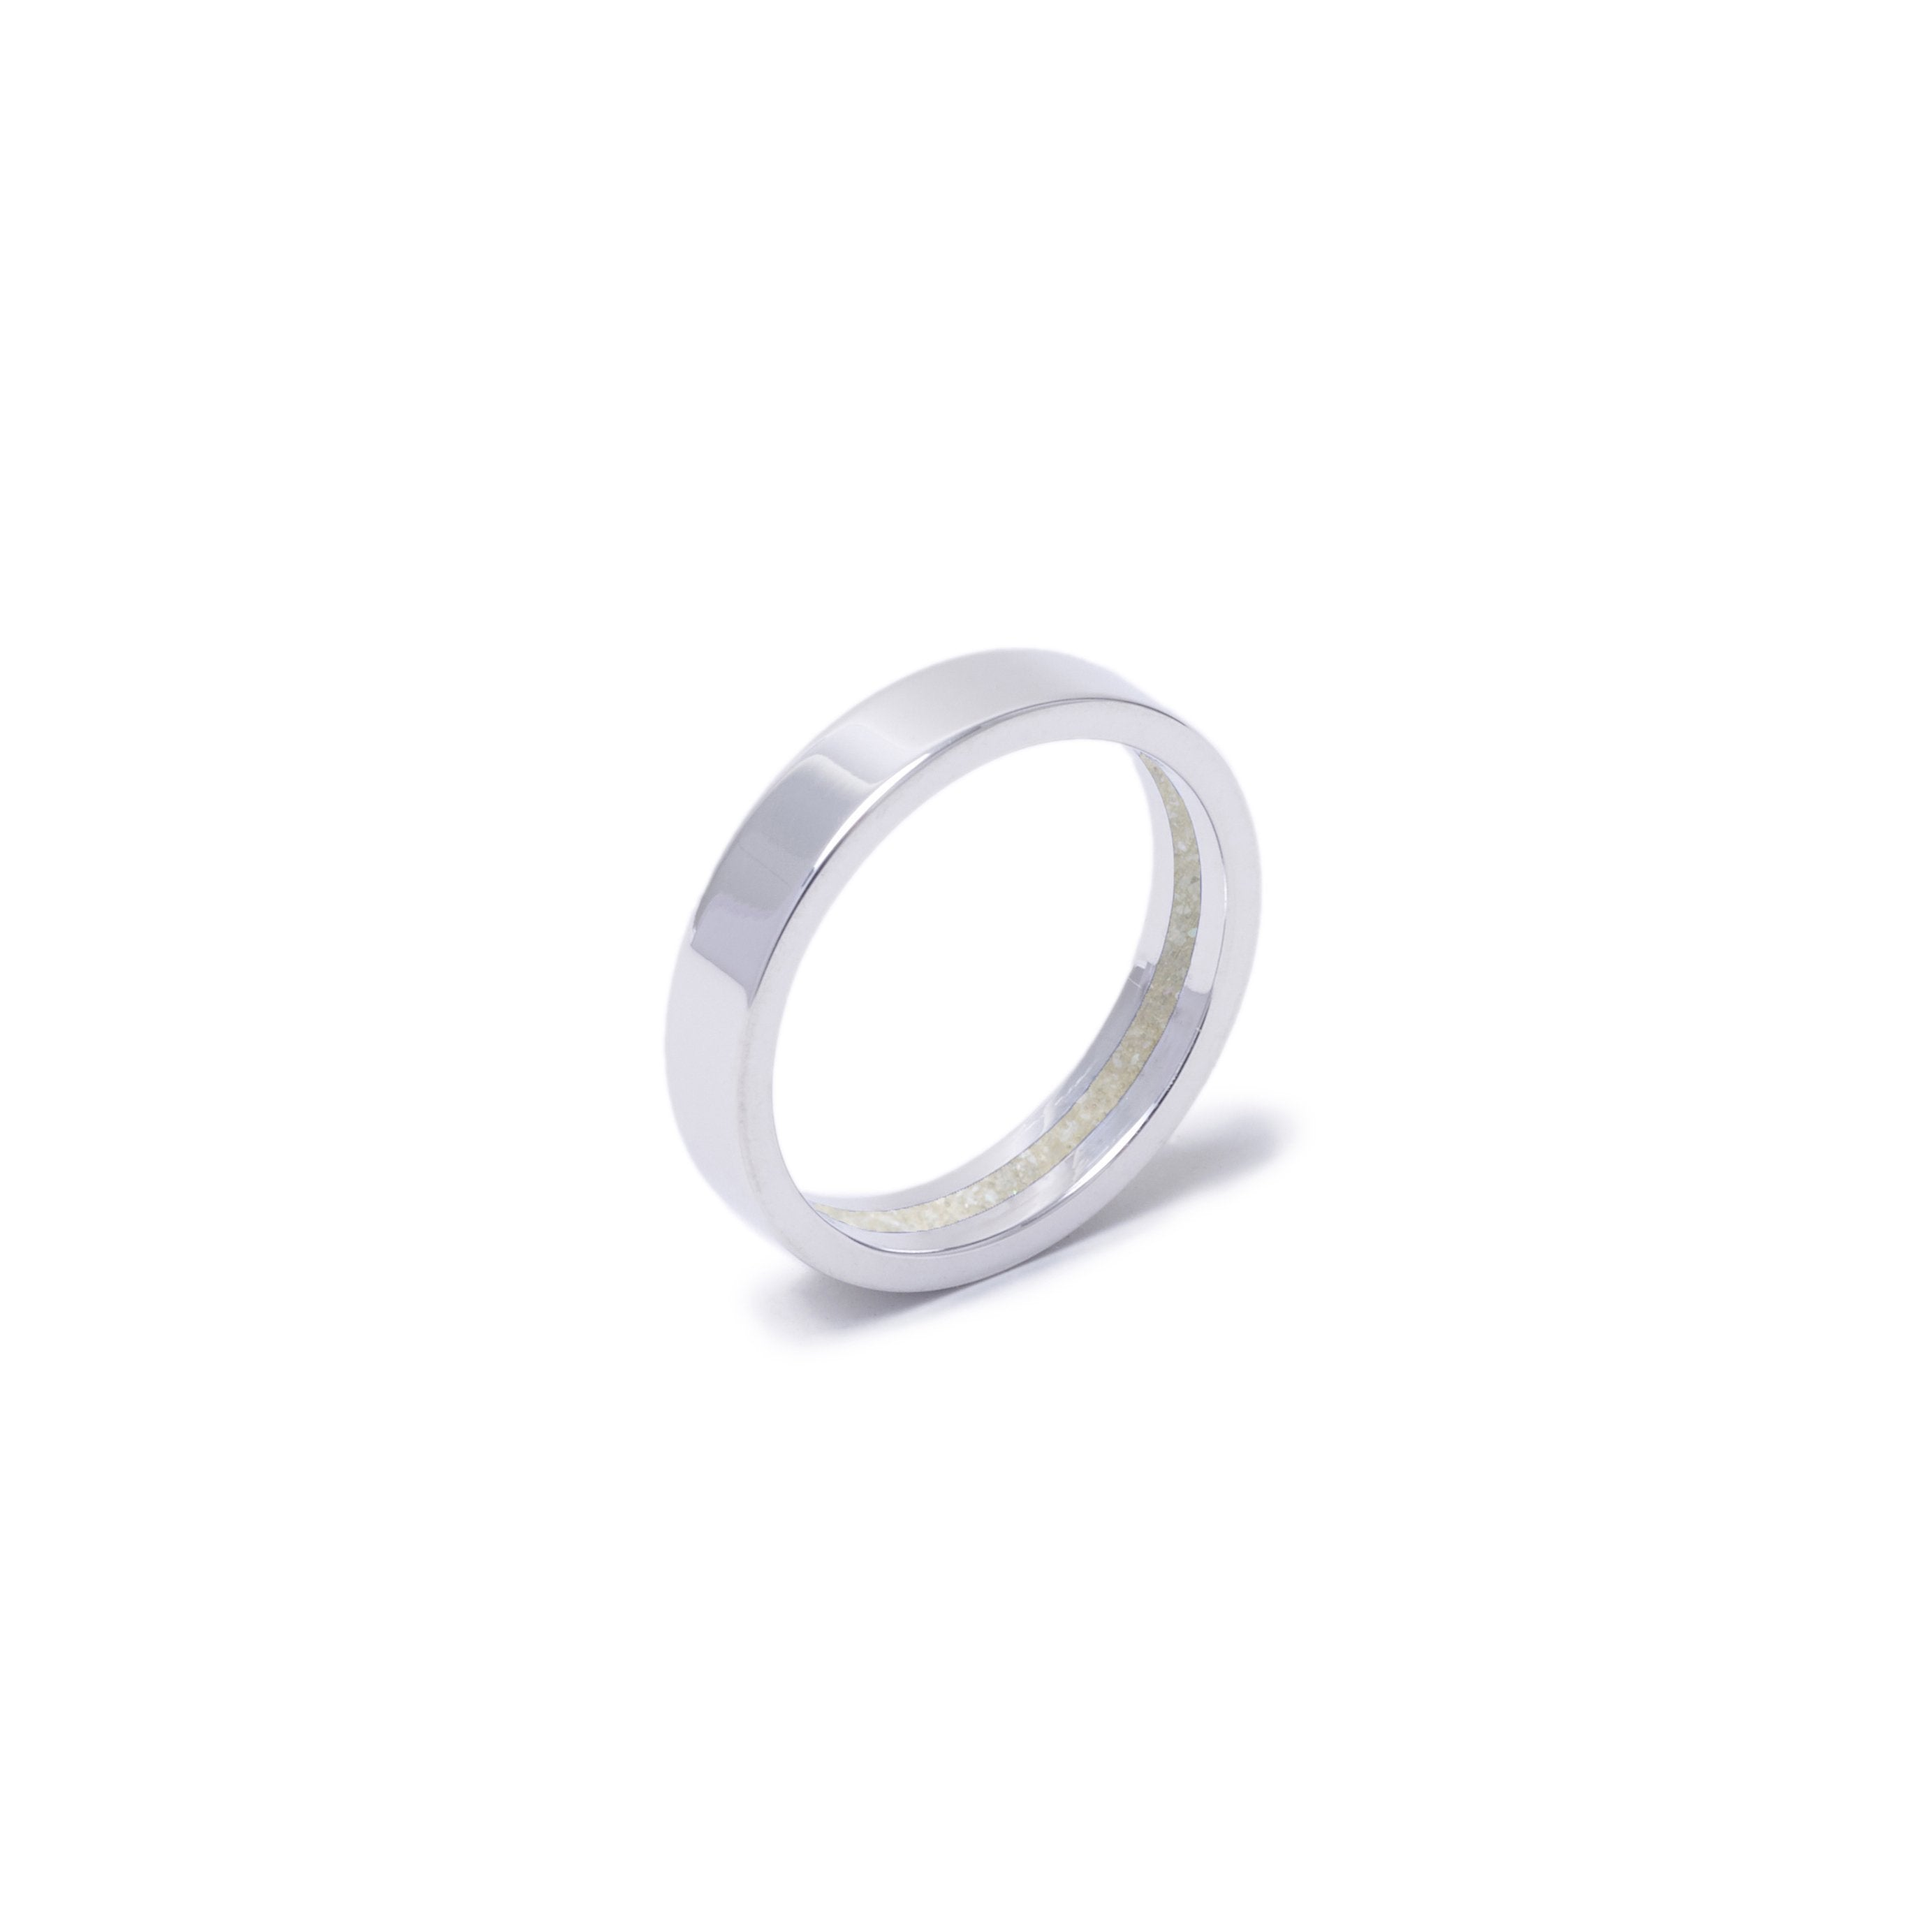 Everence Ring, 10k White Gold everence.life 4mm Pearl